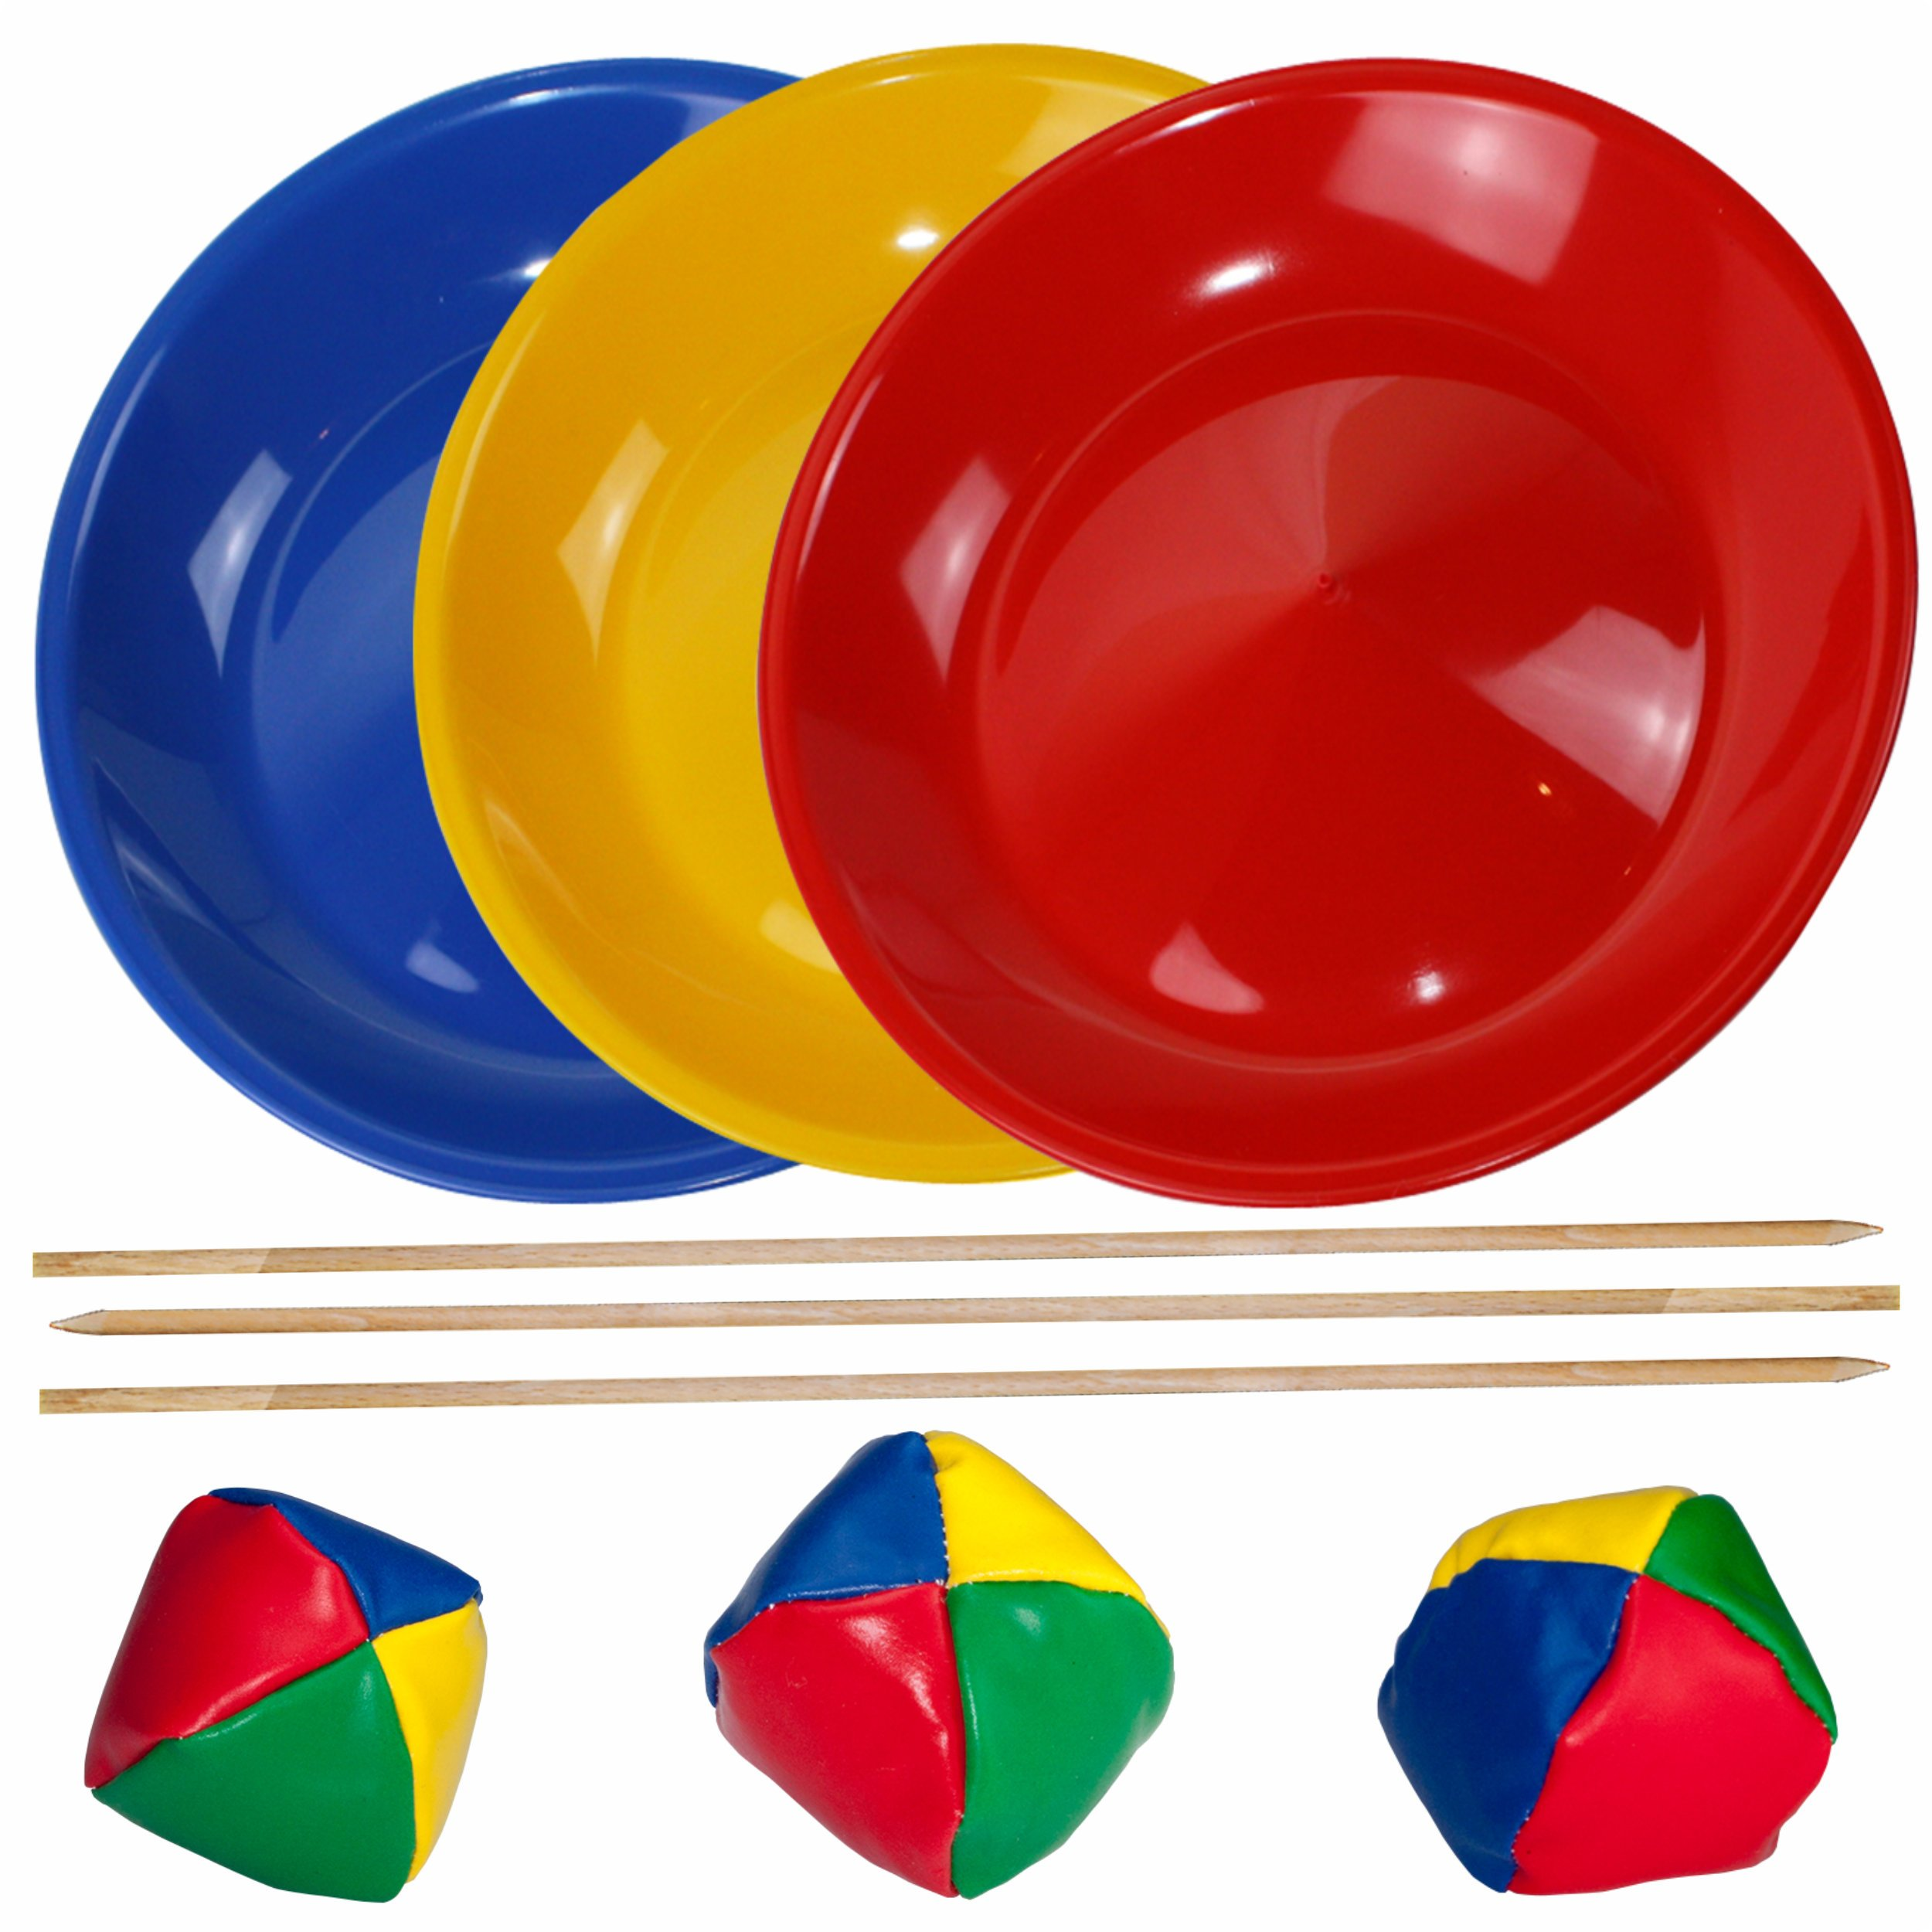 SchwabMarken Juggling Set, 3 Spinning / Juggling Plates with 3 Wooden Sticks and 3 Juggling Balls, Mixed Colours